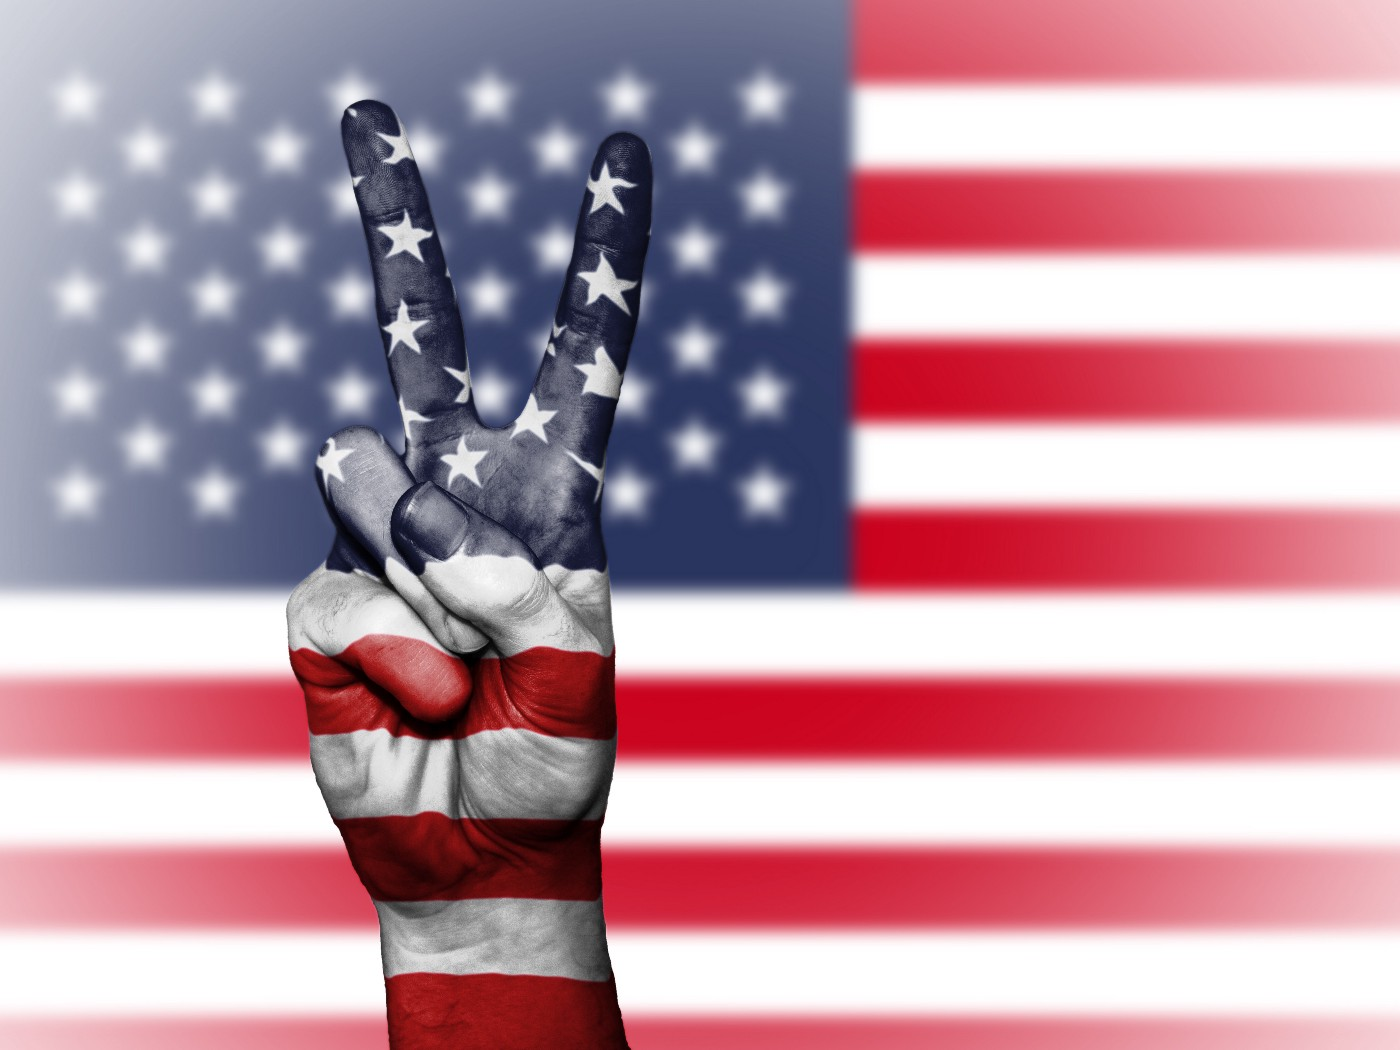 A hand holding up a peace sign with an American Flag image laid over it